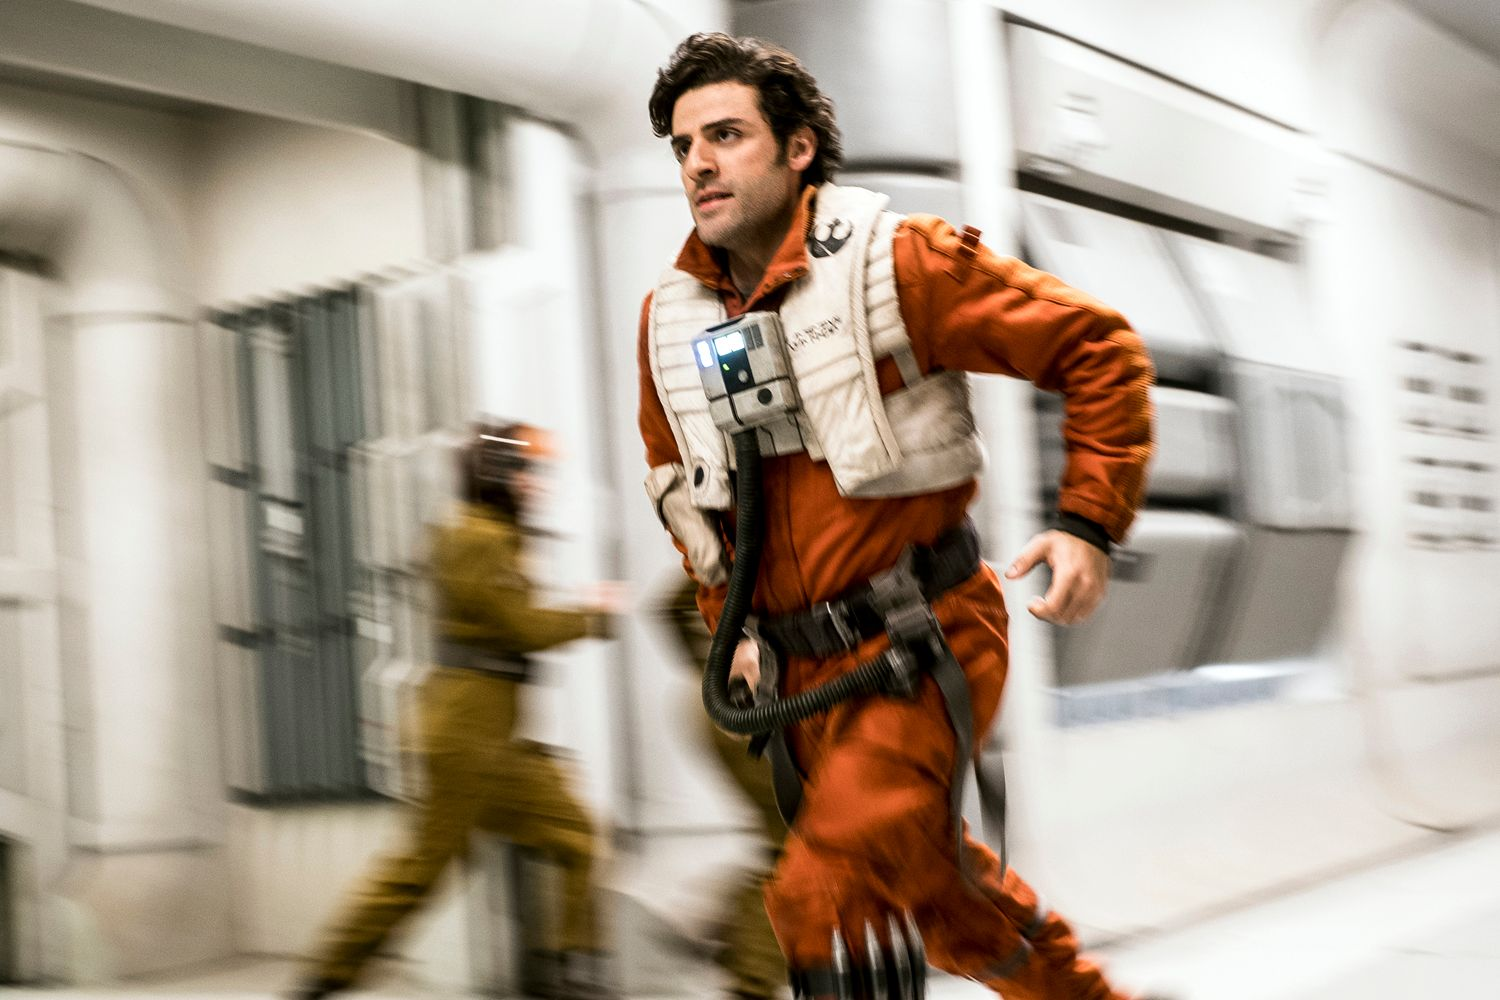 Oscar Isaac: 'Star Wars Episode IX' Has More Improvisation Than 'Last Jedi' & 'Force Awakens'